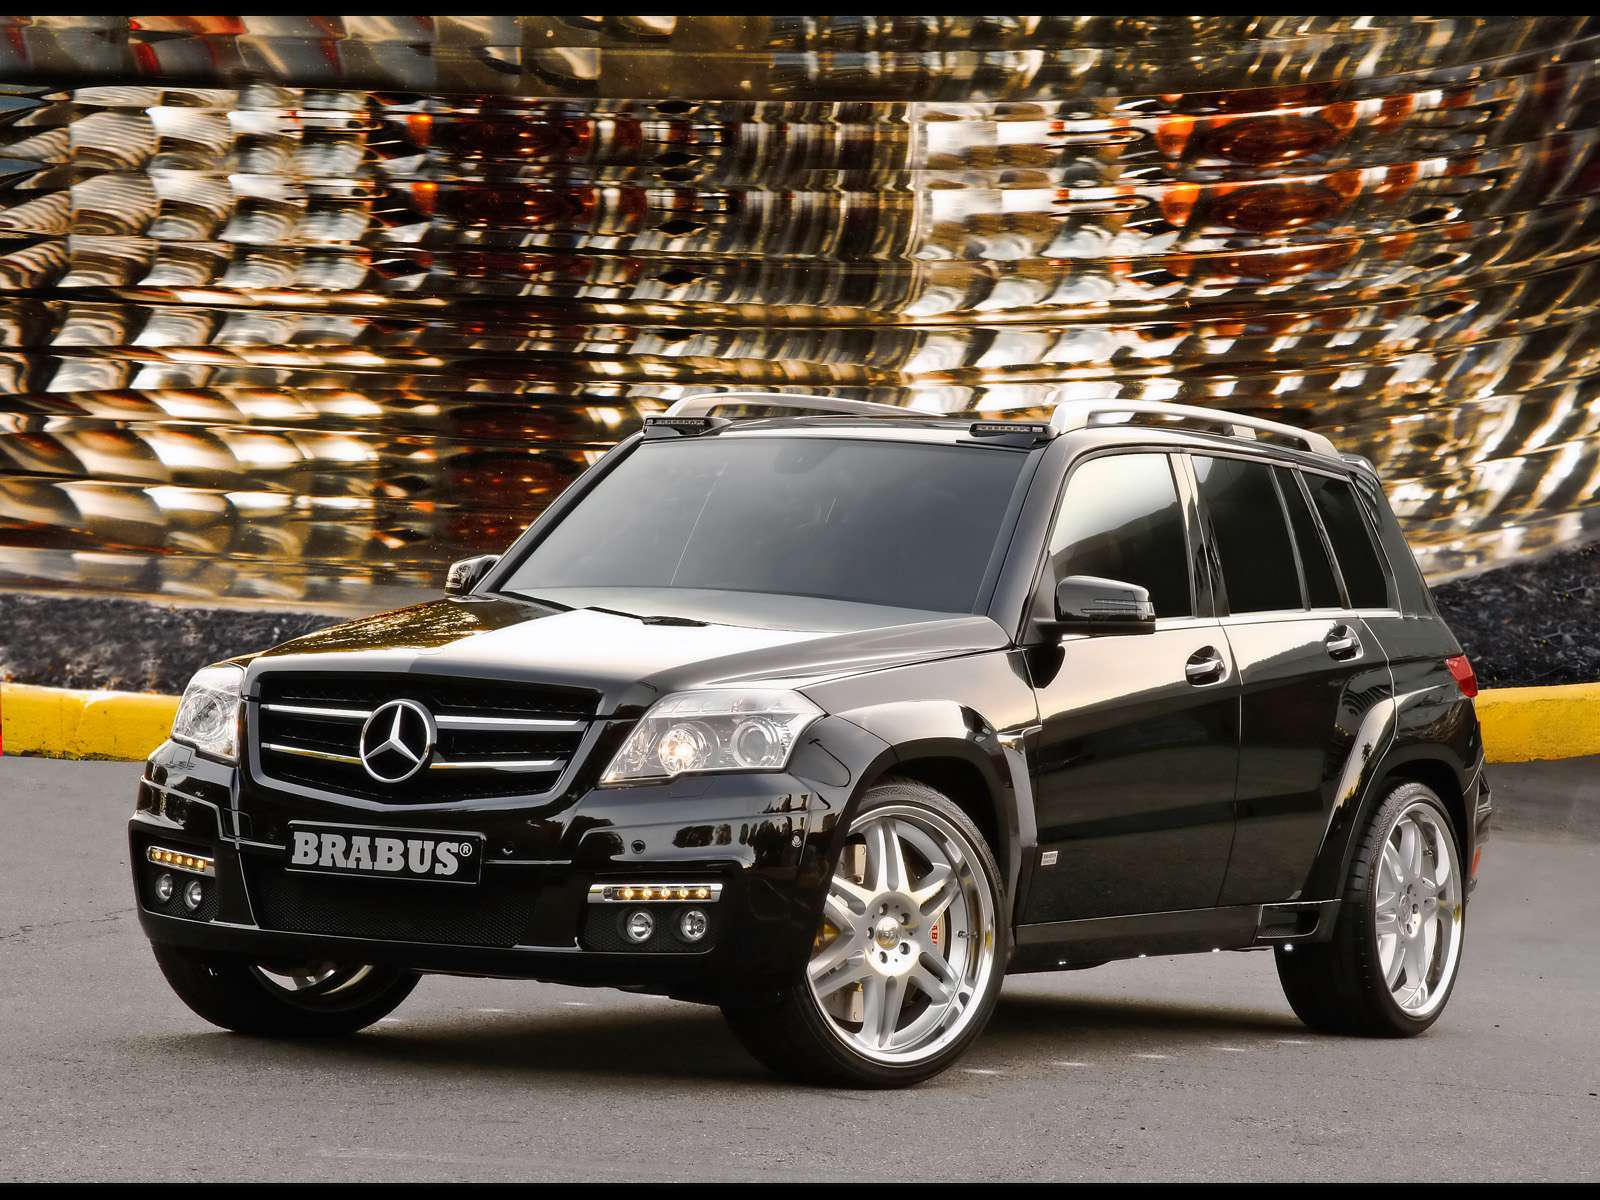 mercedes benz glk brabus widestar mercedes benz. Black Bedroom Furniture Sets. Home Design Ideas